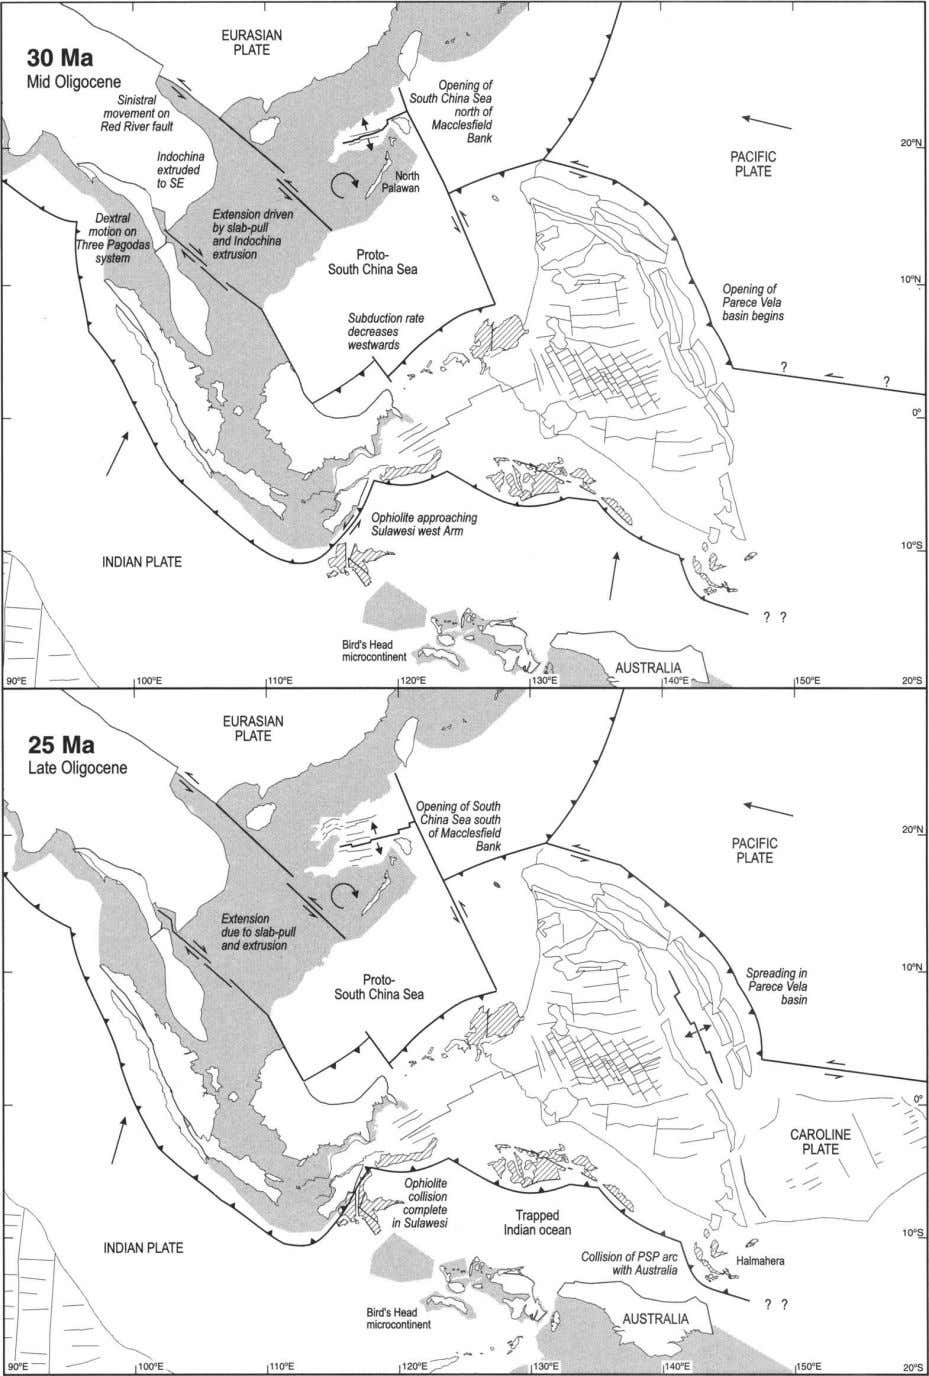 Fig. 4. Reconstructions of the region at 30 and 25 Ma. The South China Sea